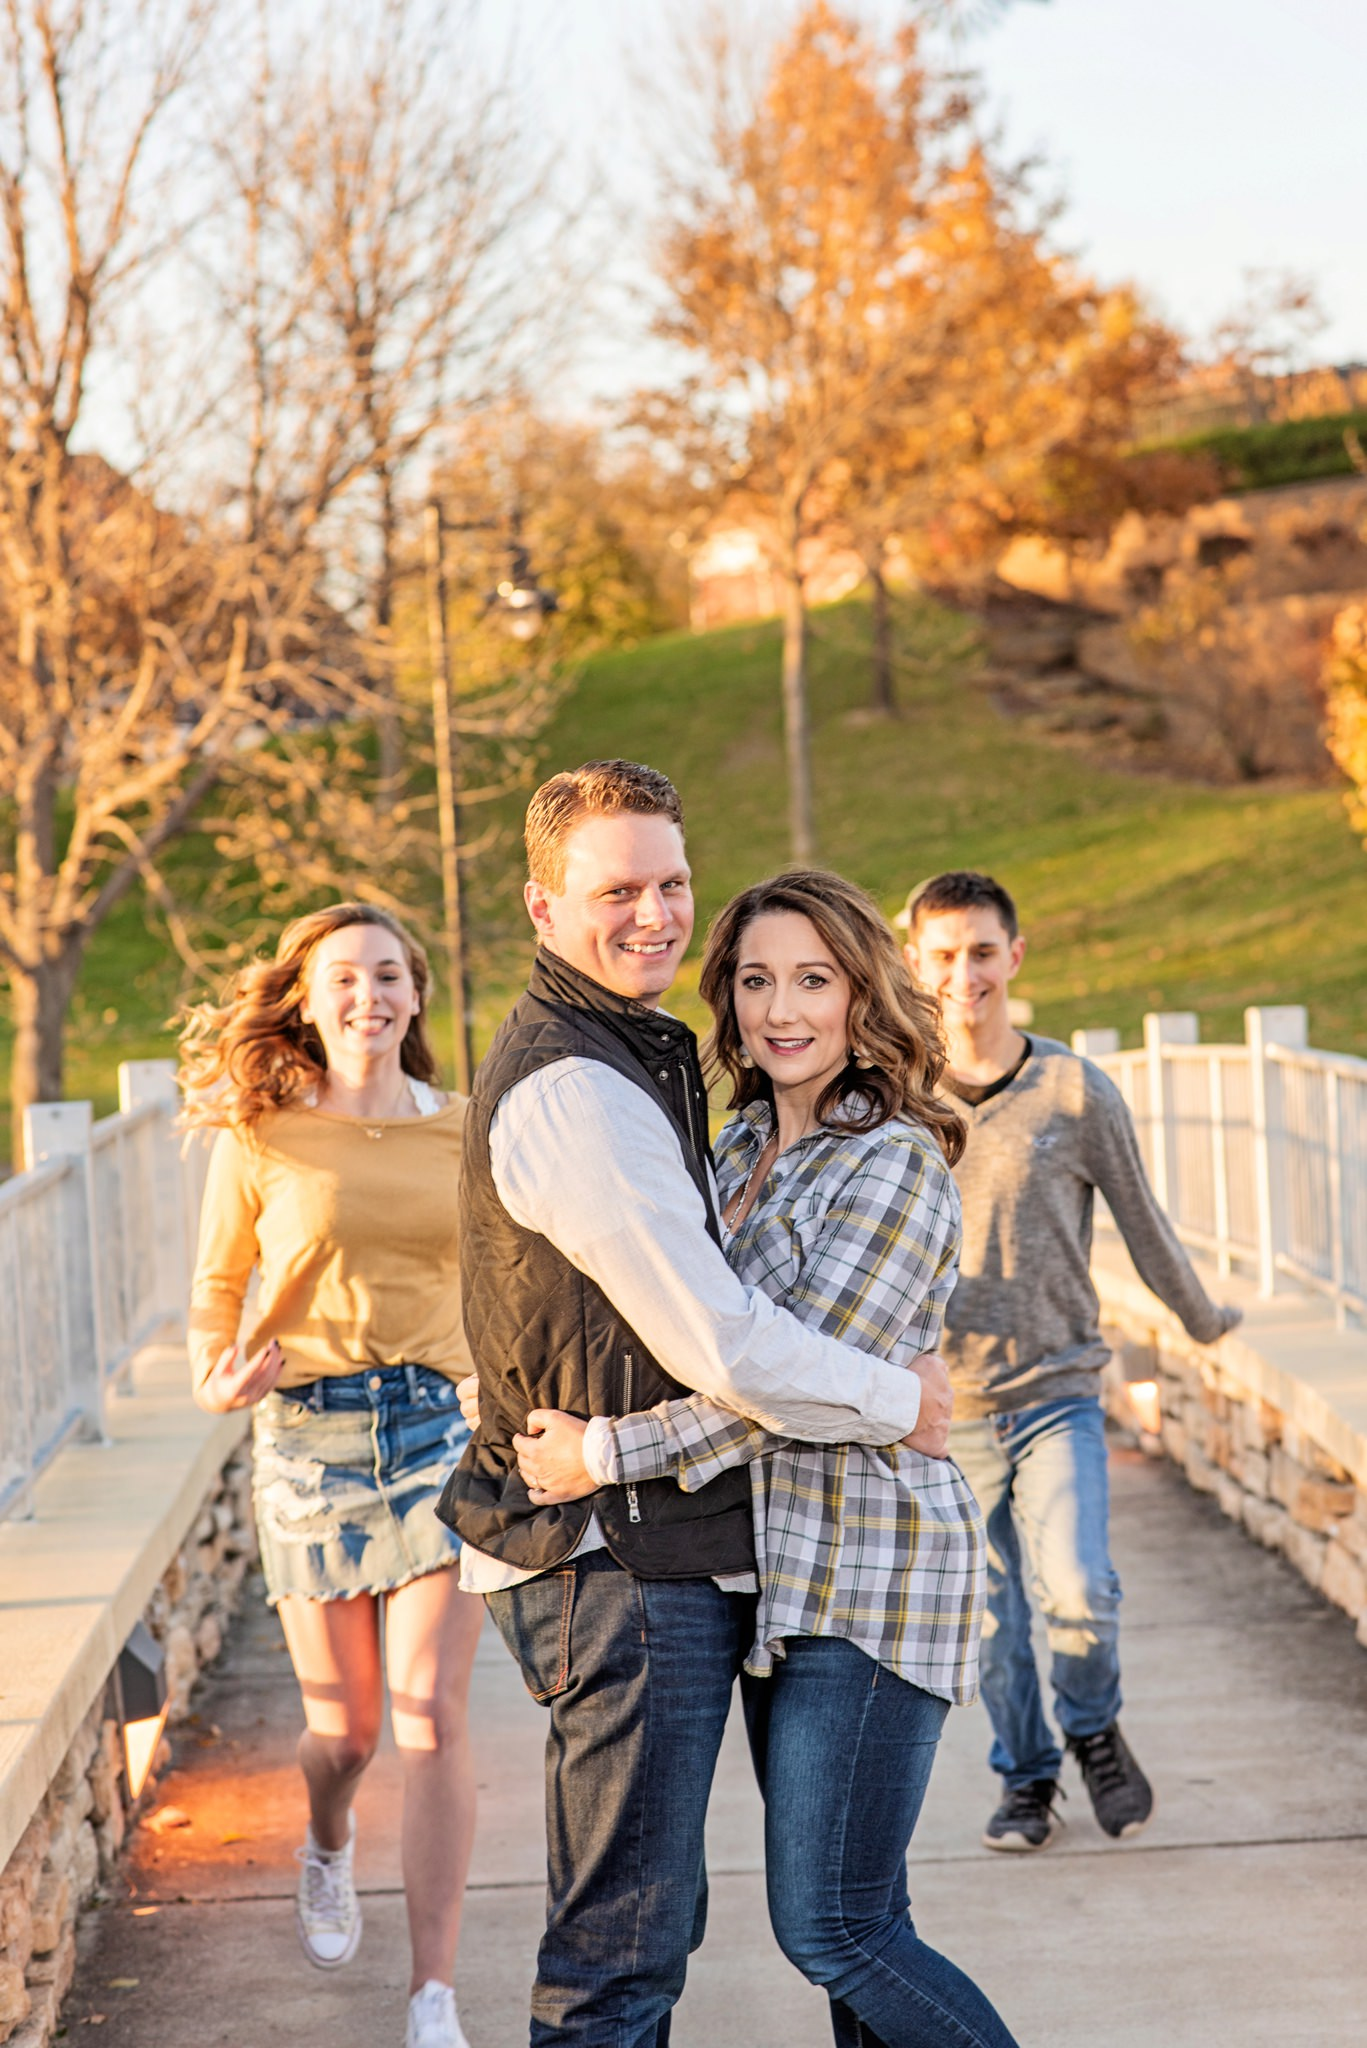 Wittwer-Family-Rotella-Photography-2018-44_WEB.jpg